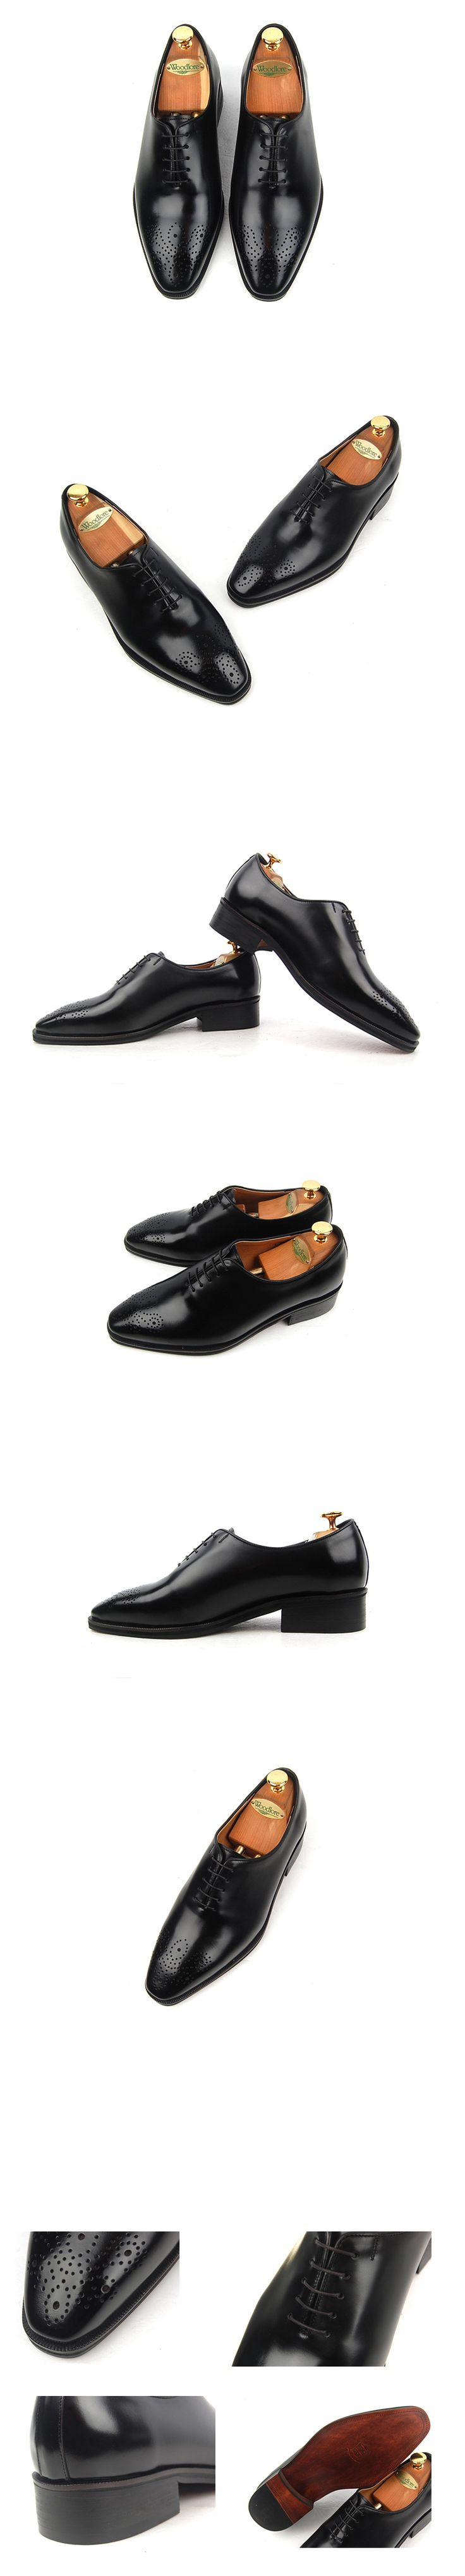 H3THECLASSIC loafer shoes man fashion #h3theclassicl#handmadeshoes#shoes#madeinkorea#instashoes#classic#menshoes#oxford#h3theclassic#fashion#custom#handmade#mensshoes#instashoe#손신발#에이치쓰리더클래식#수제화#남성수제화#남자수제화#커스텀#남자구두#핸드메이드#신스타그램#맞춤#클리퍼#남성클리퍼#남자로퍼#맞춤클리퍼#fashionaddict#dailystyle#instafashion#ootd#ootdmagazine#lookbook#streetchic#데일리룩#OX-1005K www.h3theclassic.com